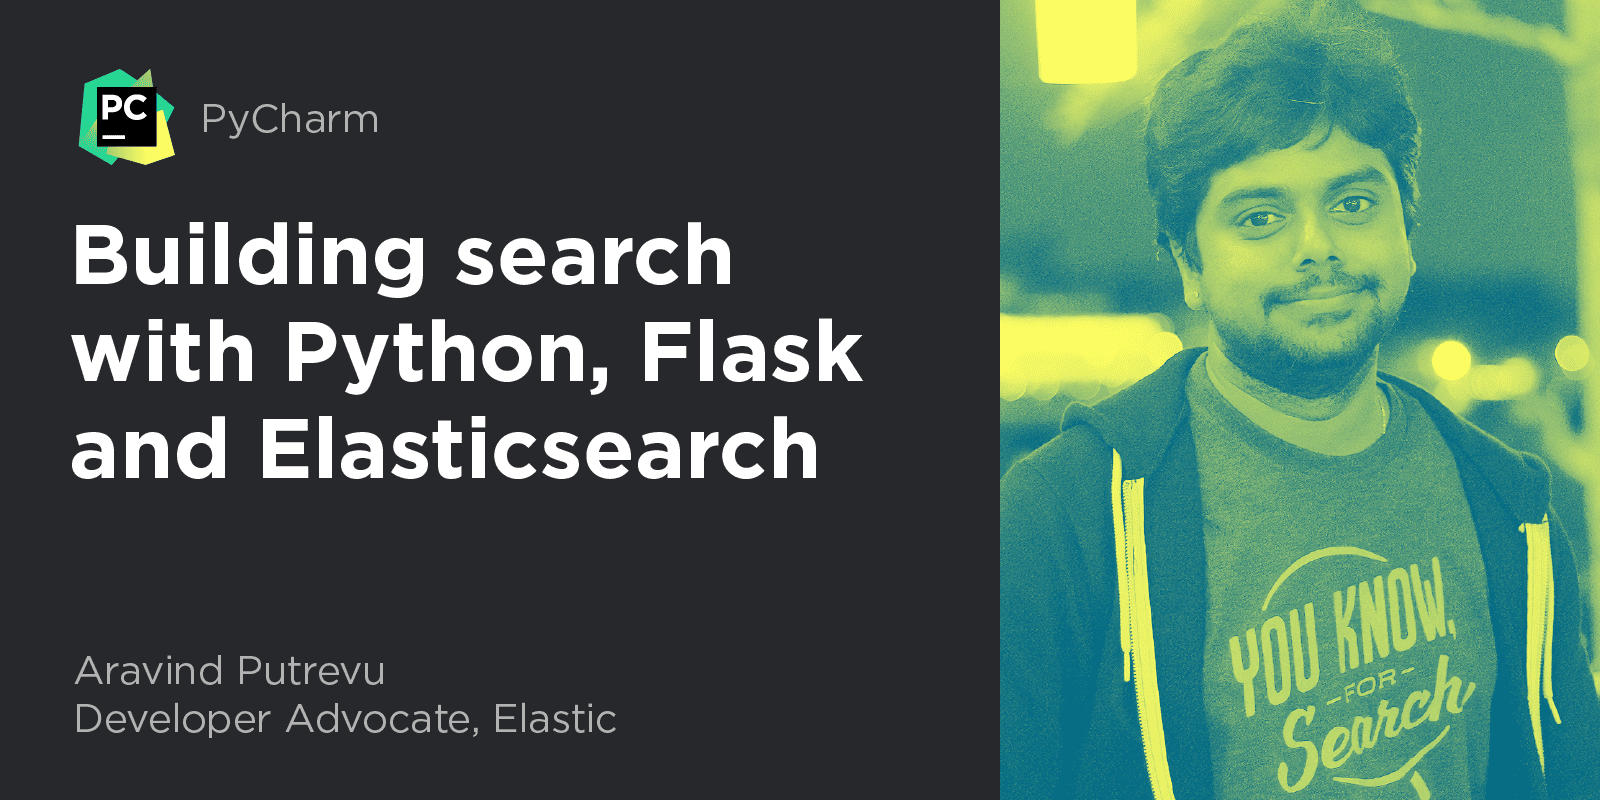 PyCharm Webinar Building search with Python Flask and Elasticsearch